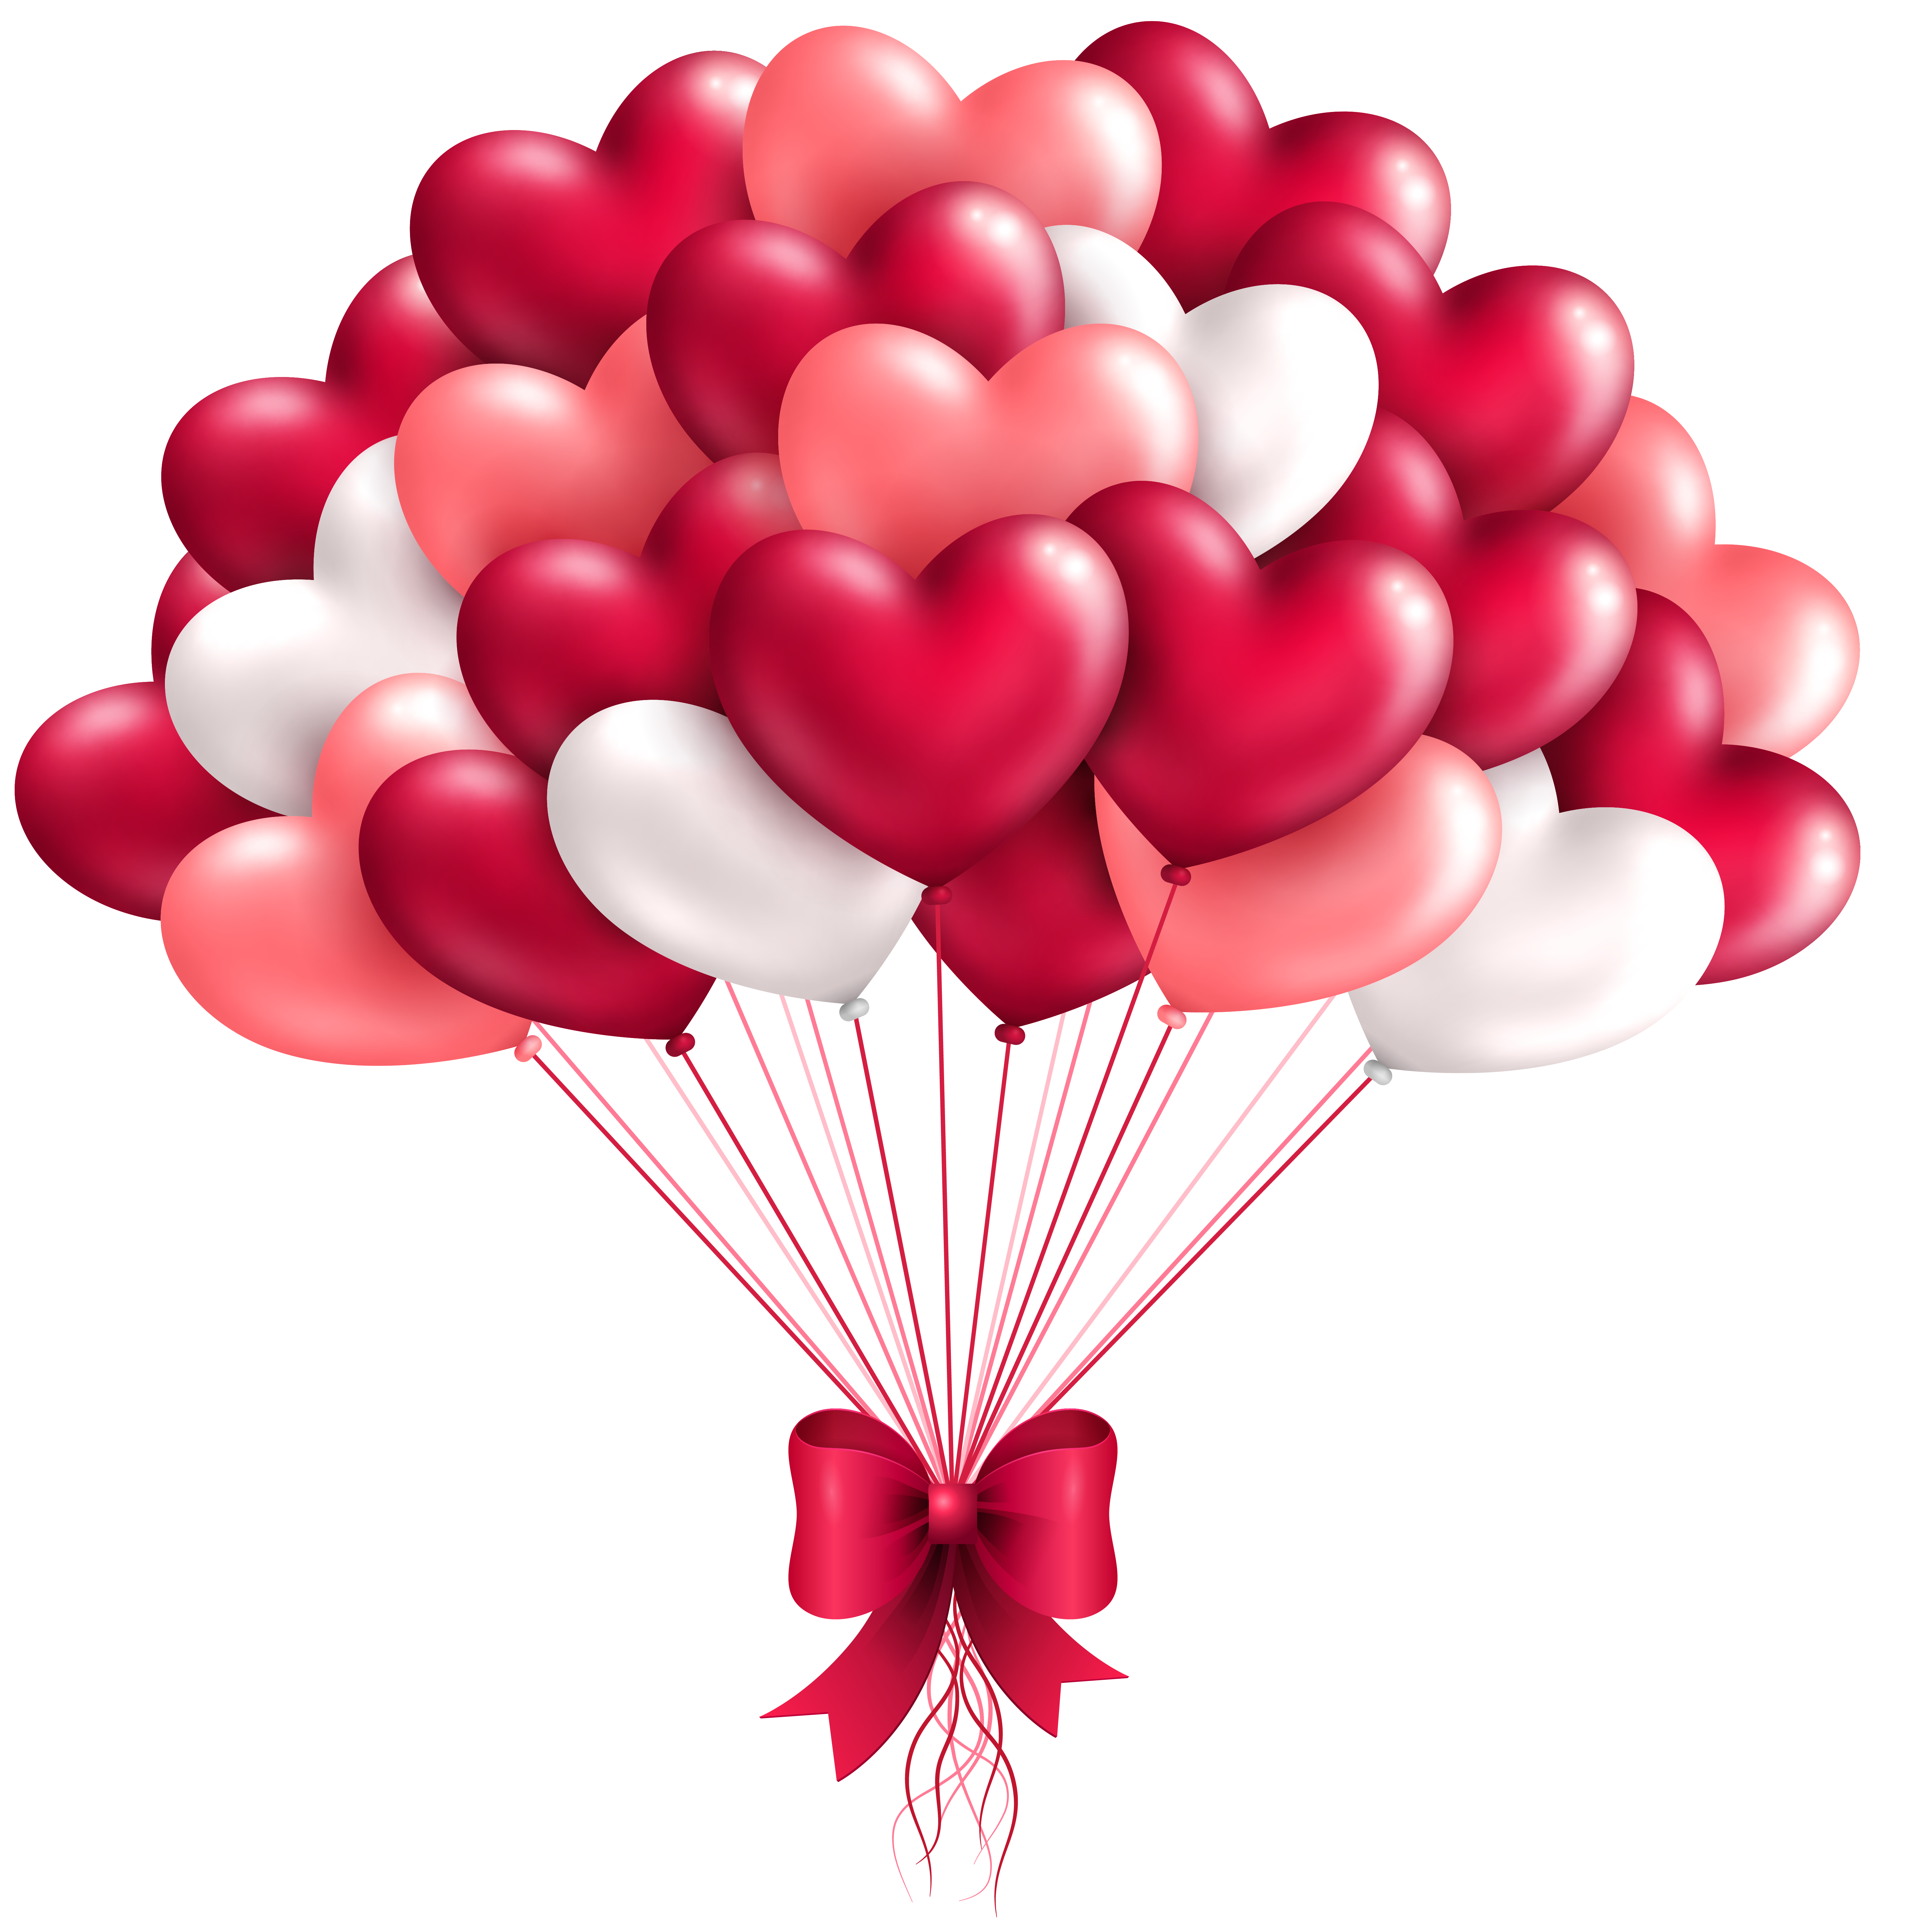 Beautiful Heart Balloons PNG Clipart Image.